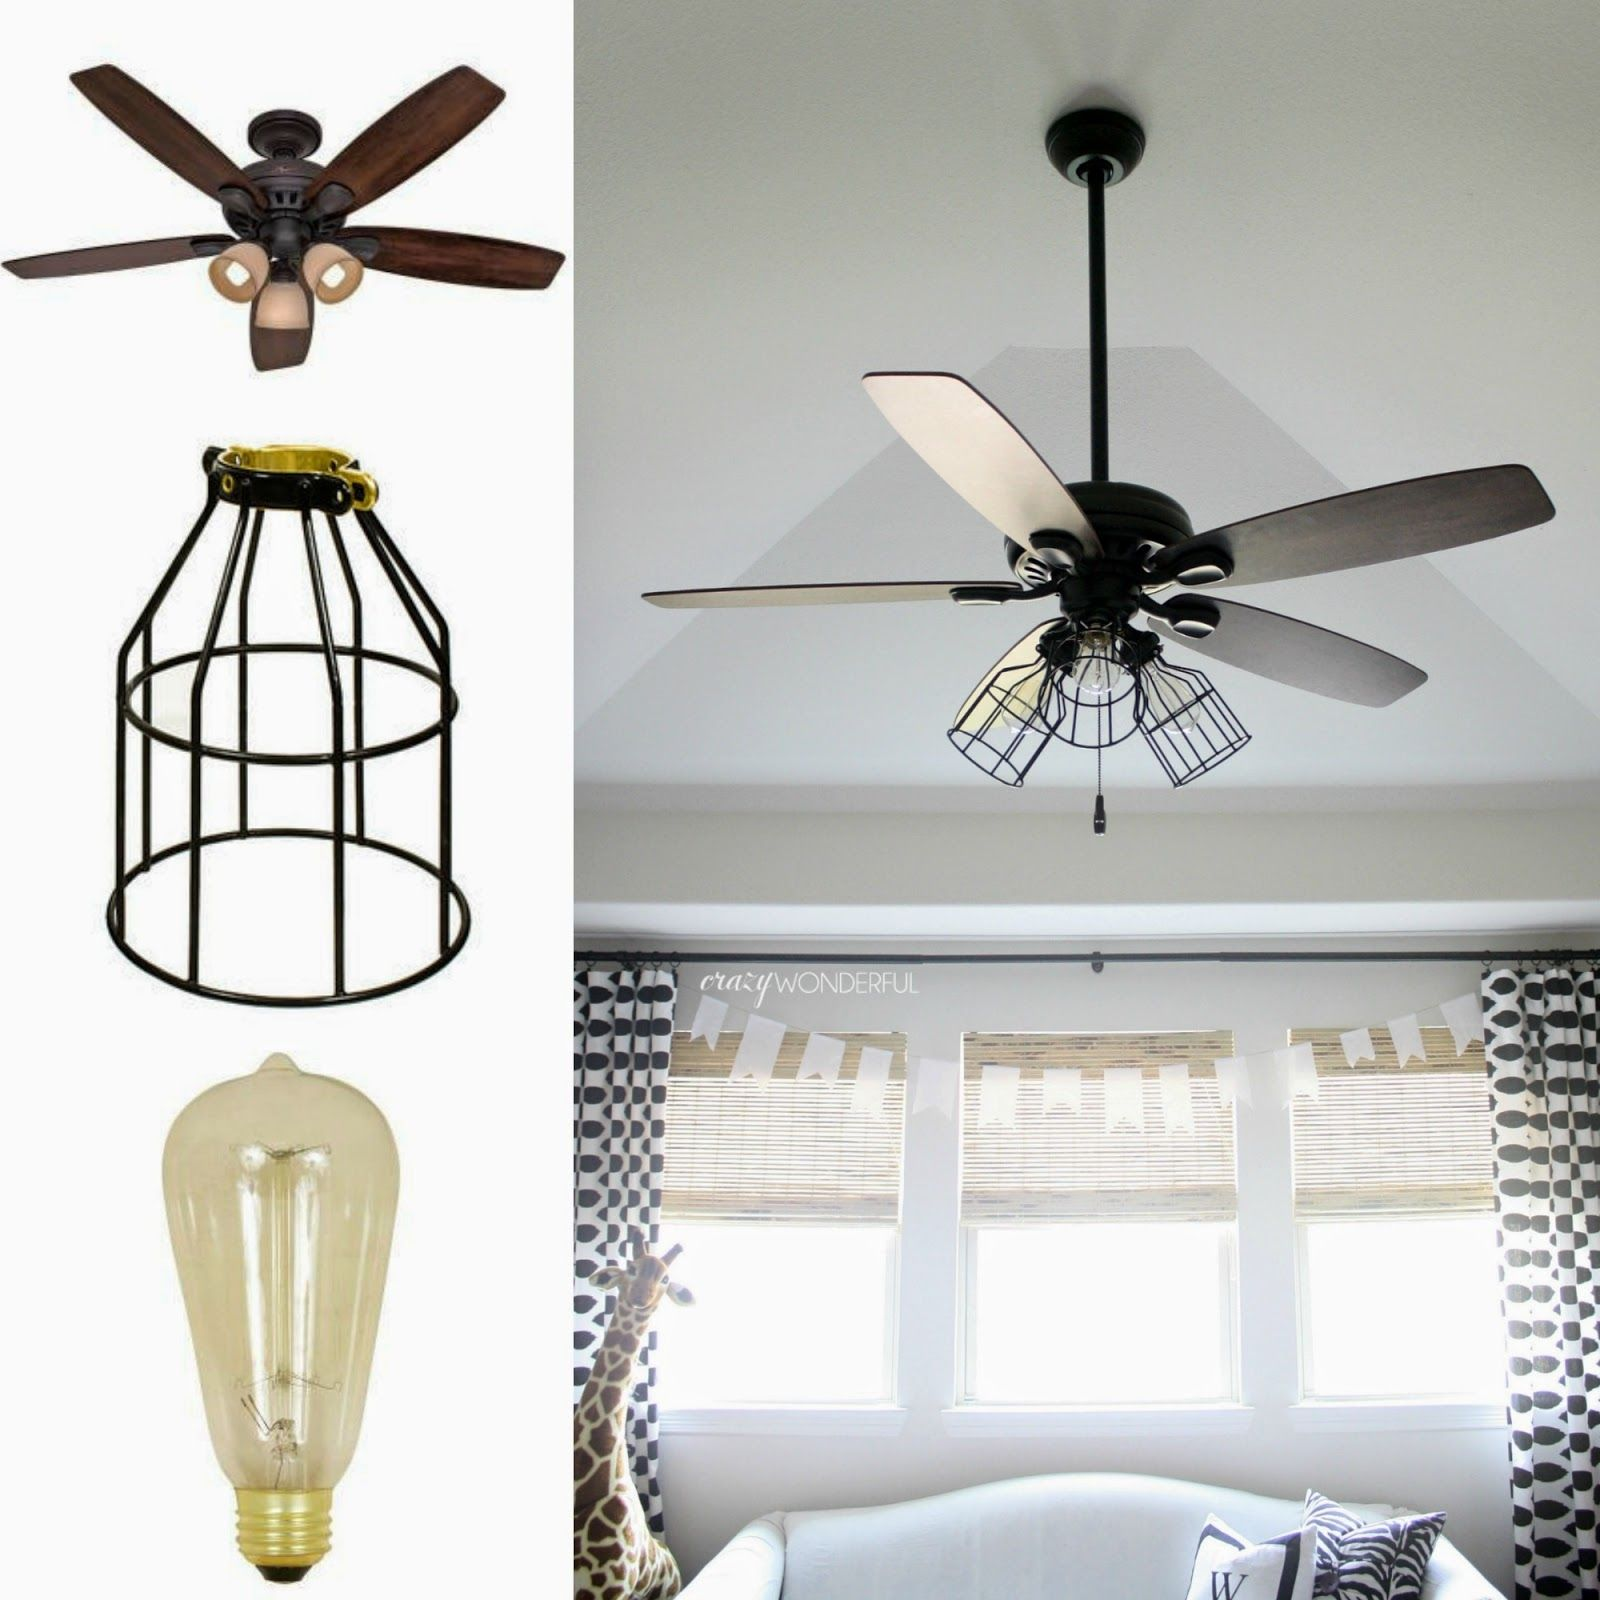 Lamp shades for hunter ceiling fans be chic pinterest ceiling lamp shades for hunter ceiling fans aloadofball Choice Image